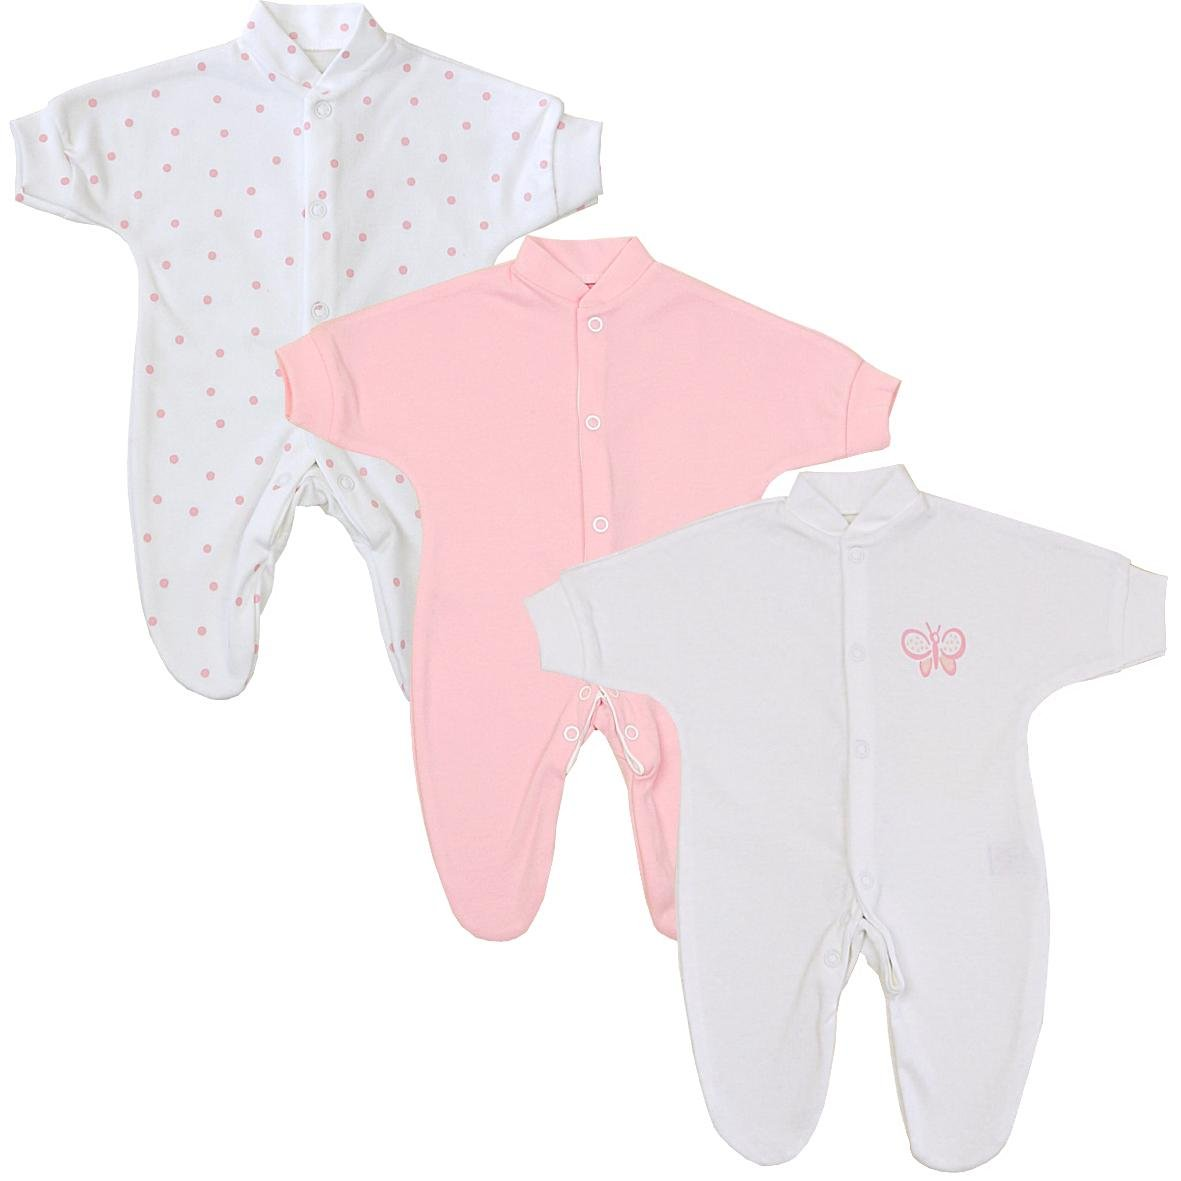 BabyPrem Premature Early Baby Sleepsuits Pack of 3 Babygrows Boy Girl Clothes LB004-PS-PSD-PTA-PBF